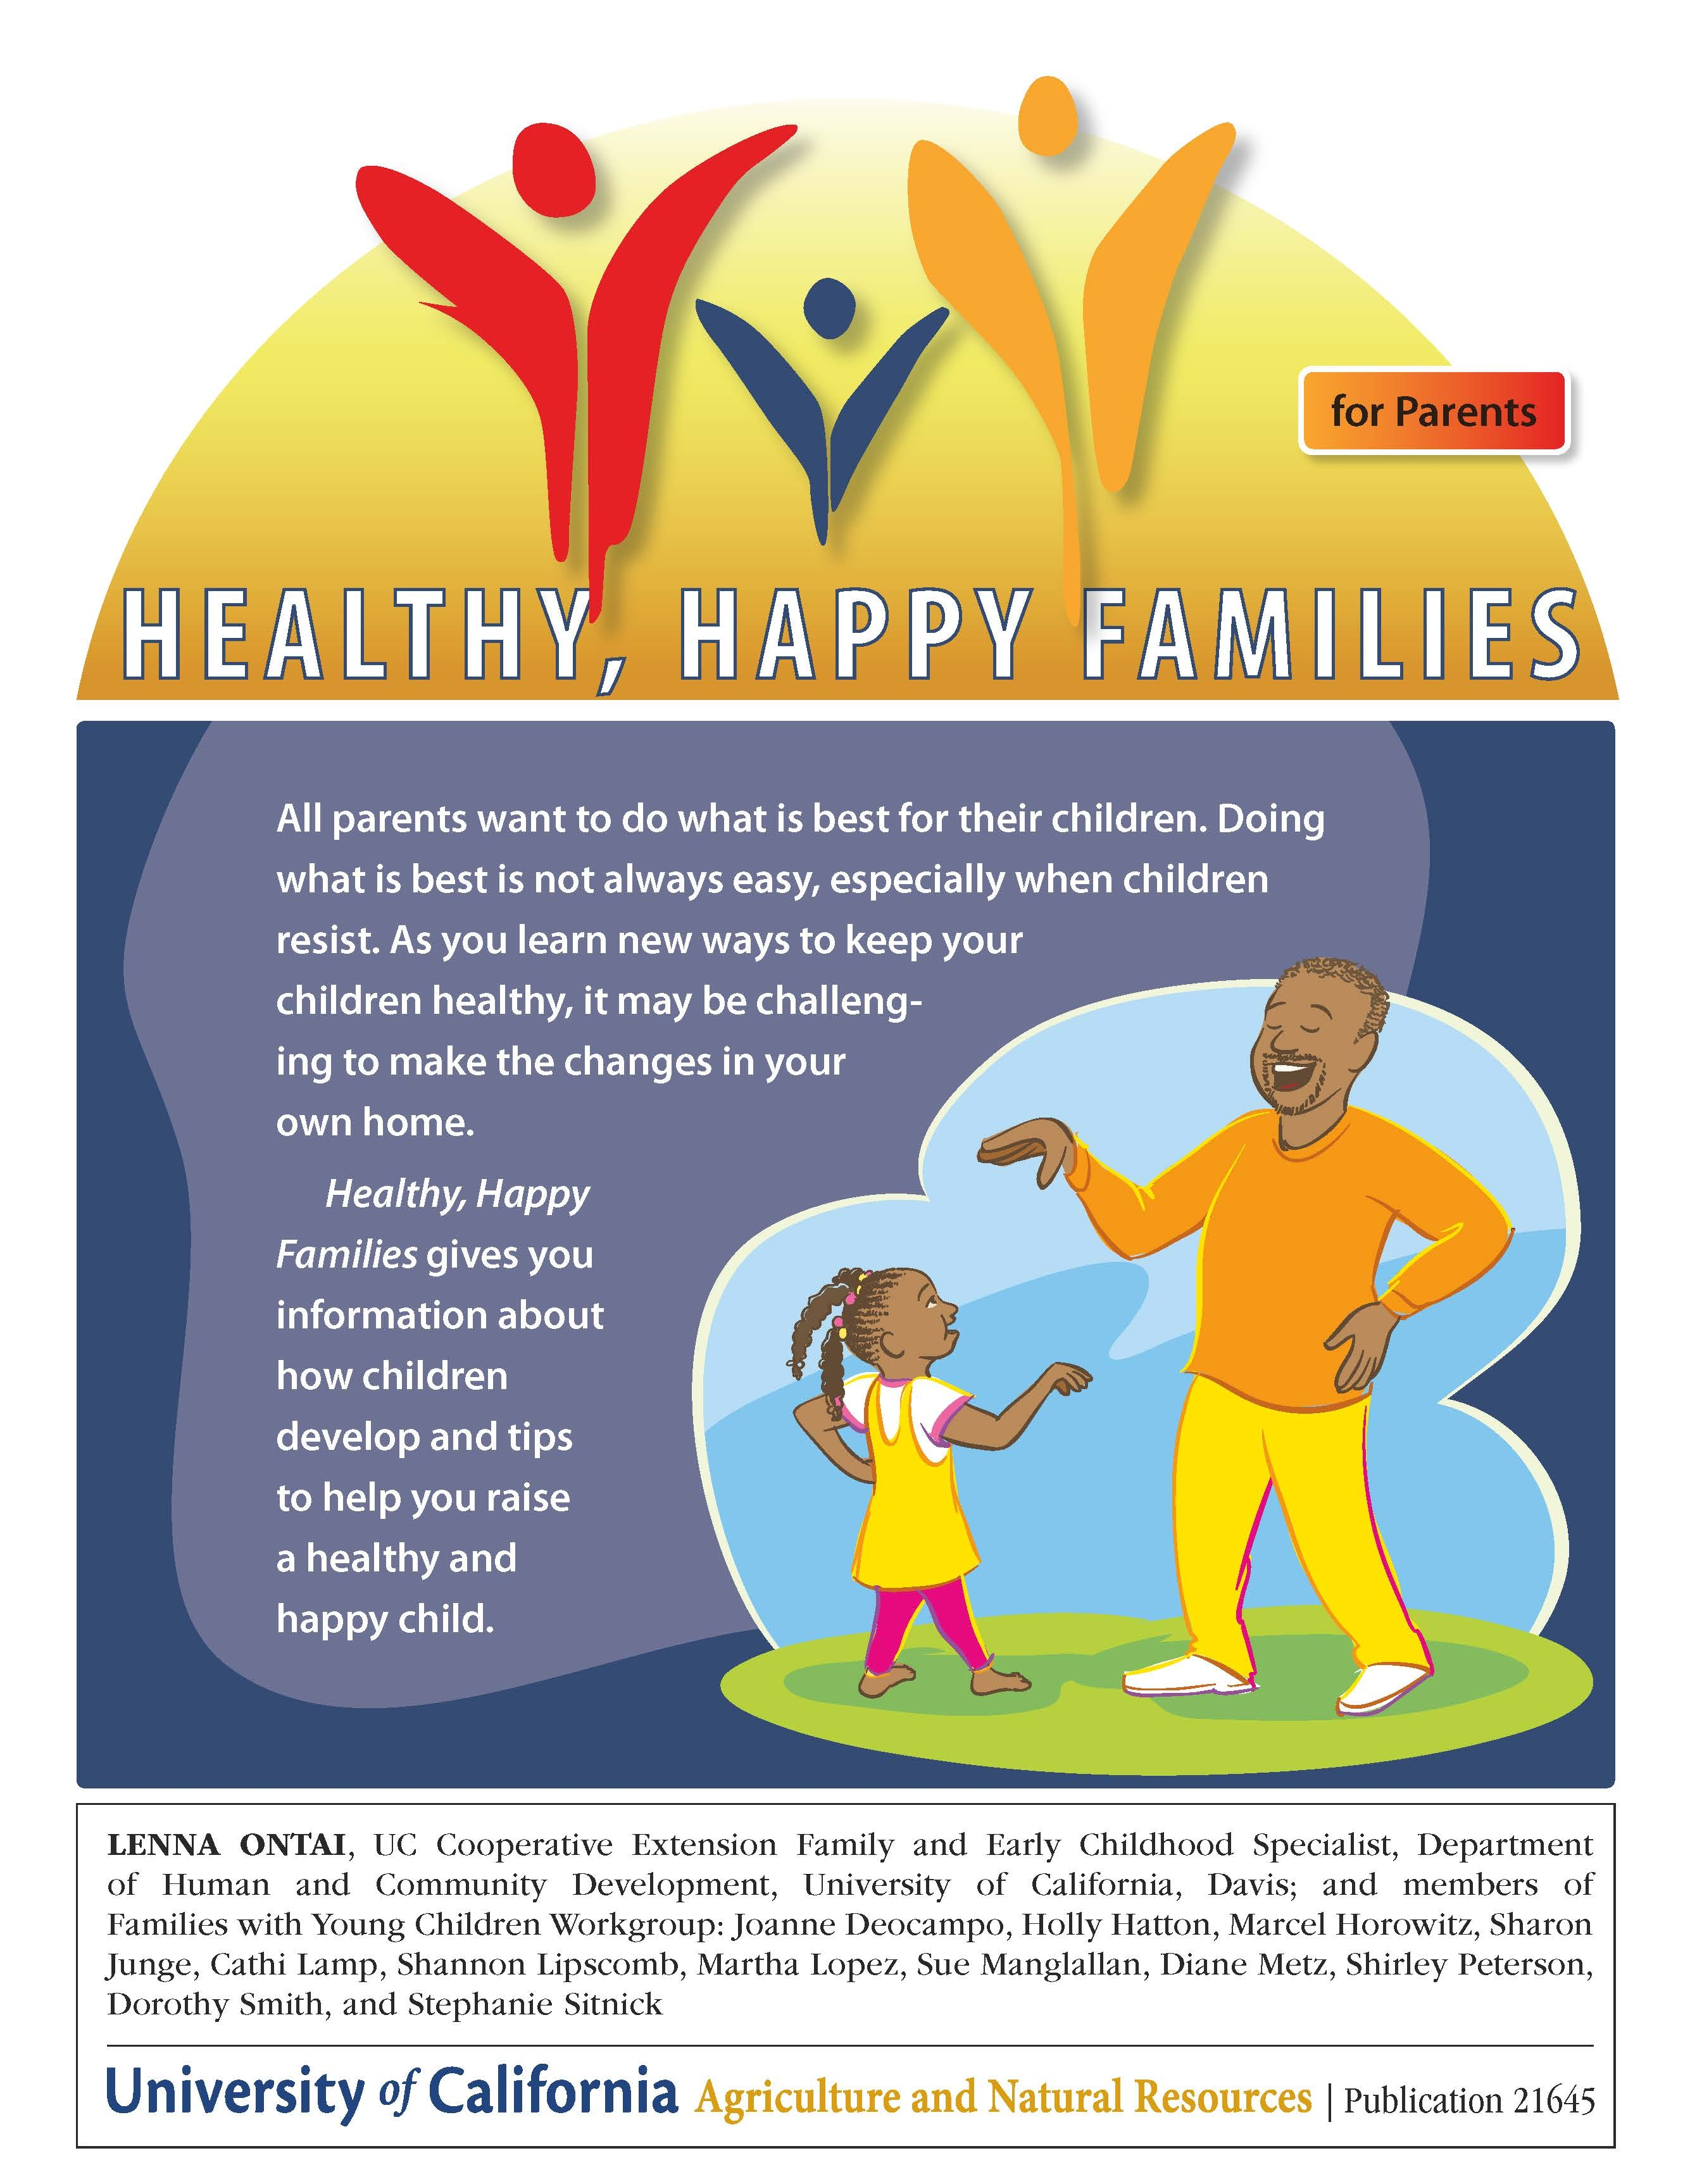 Parents can make healthful eating fun for kids Food Blog ANR Blogs